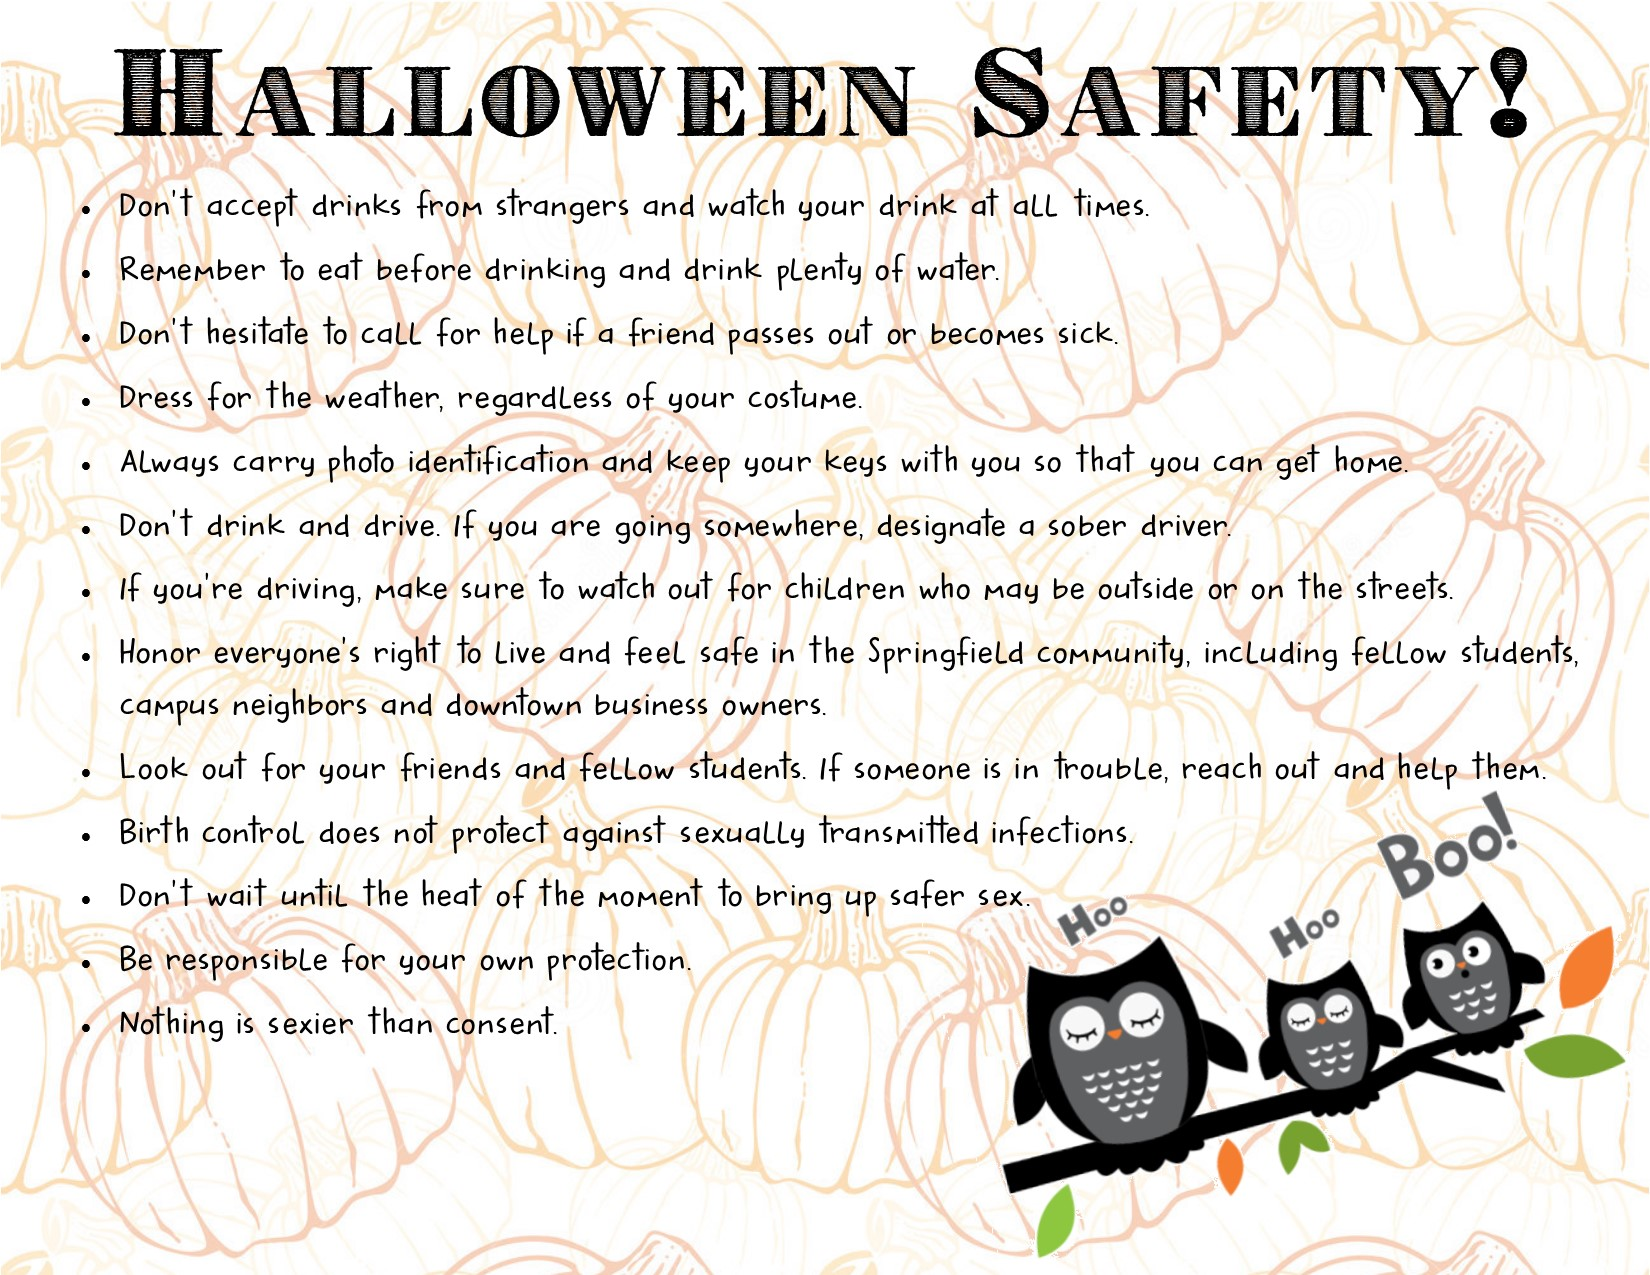 Halloween Safety!